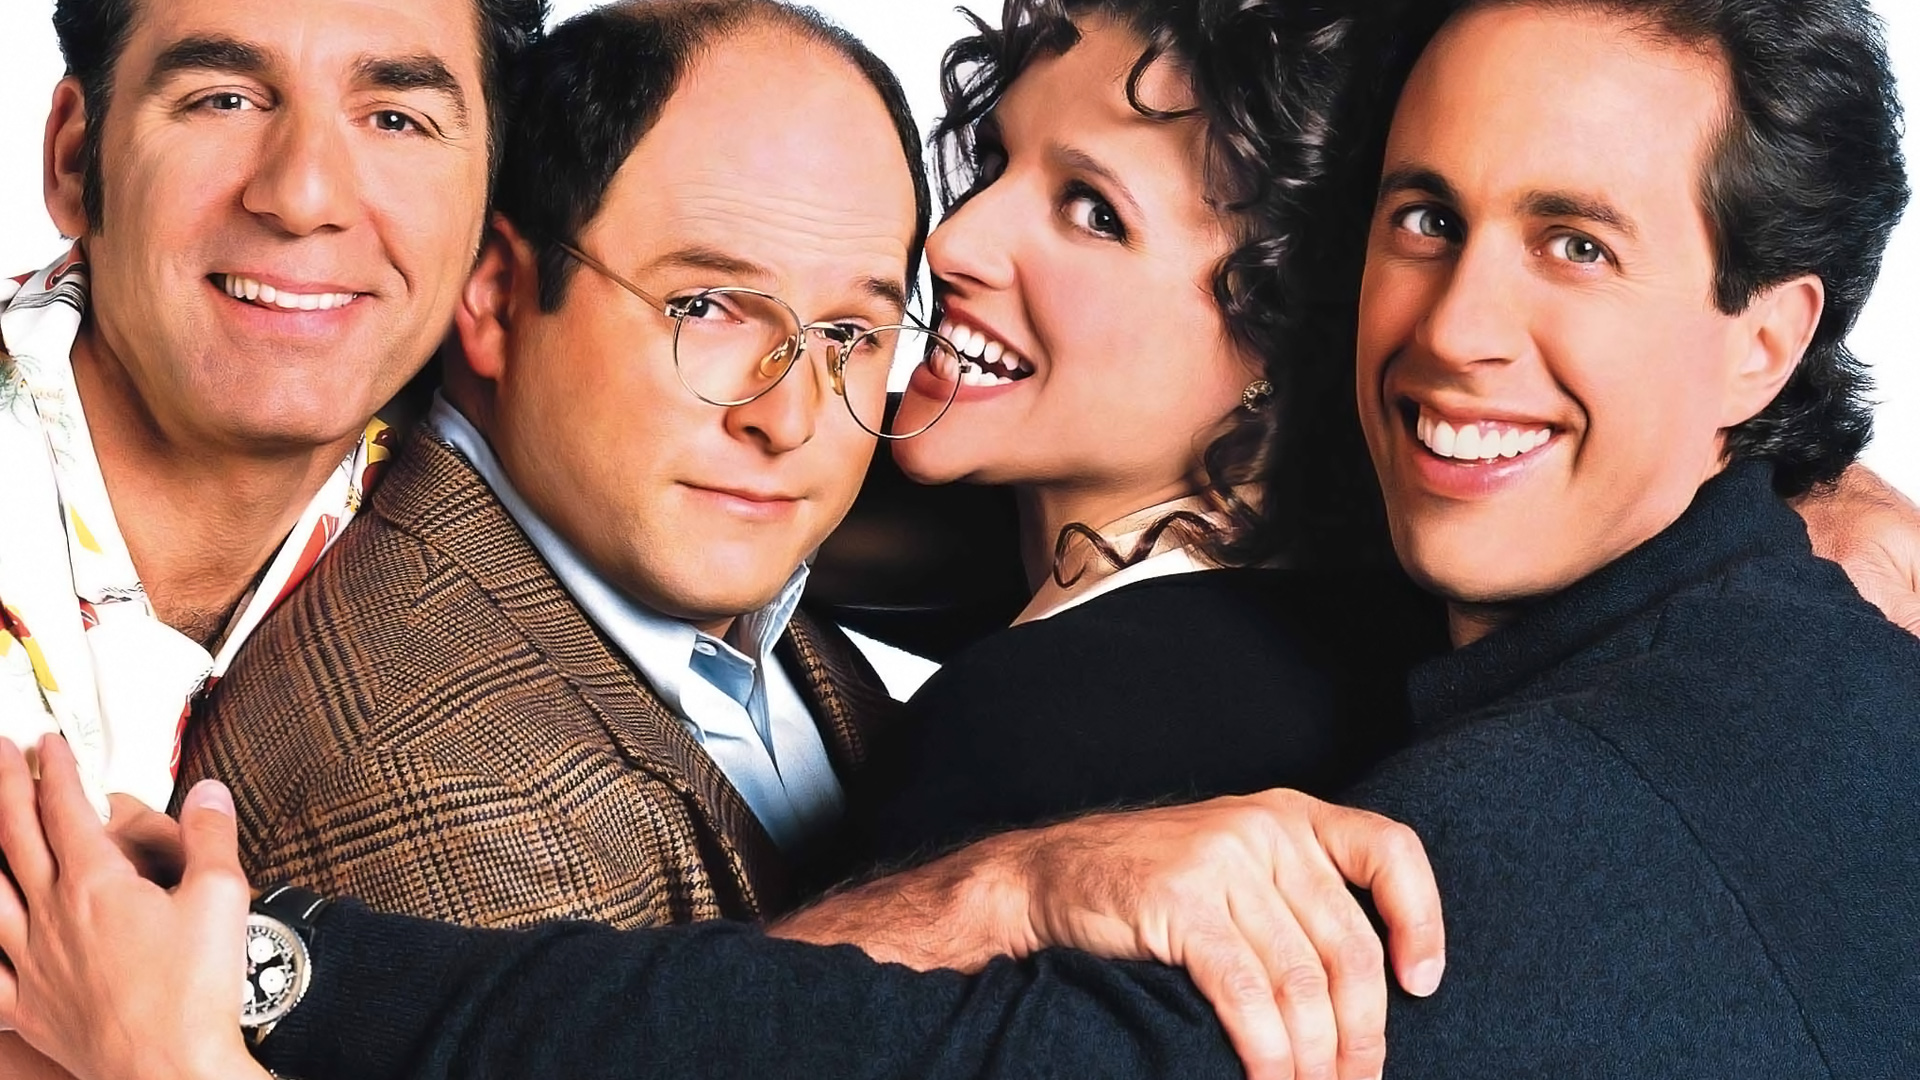 Photo of 3 Sitcoms Better Than 'Friends'